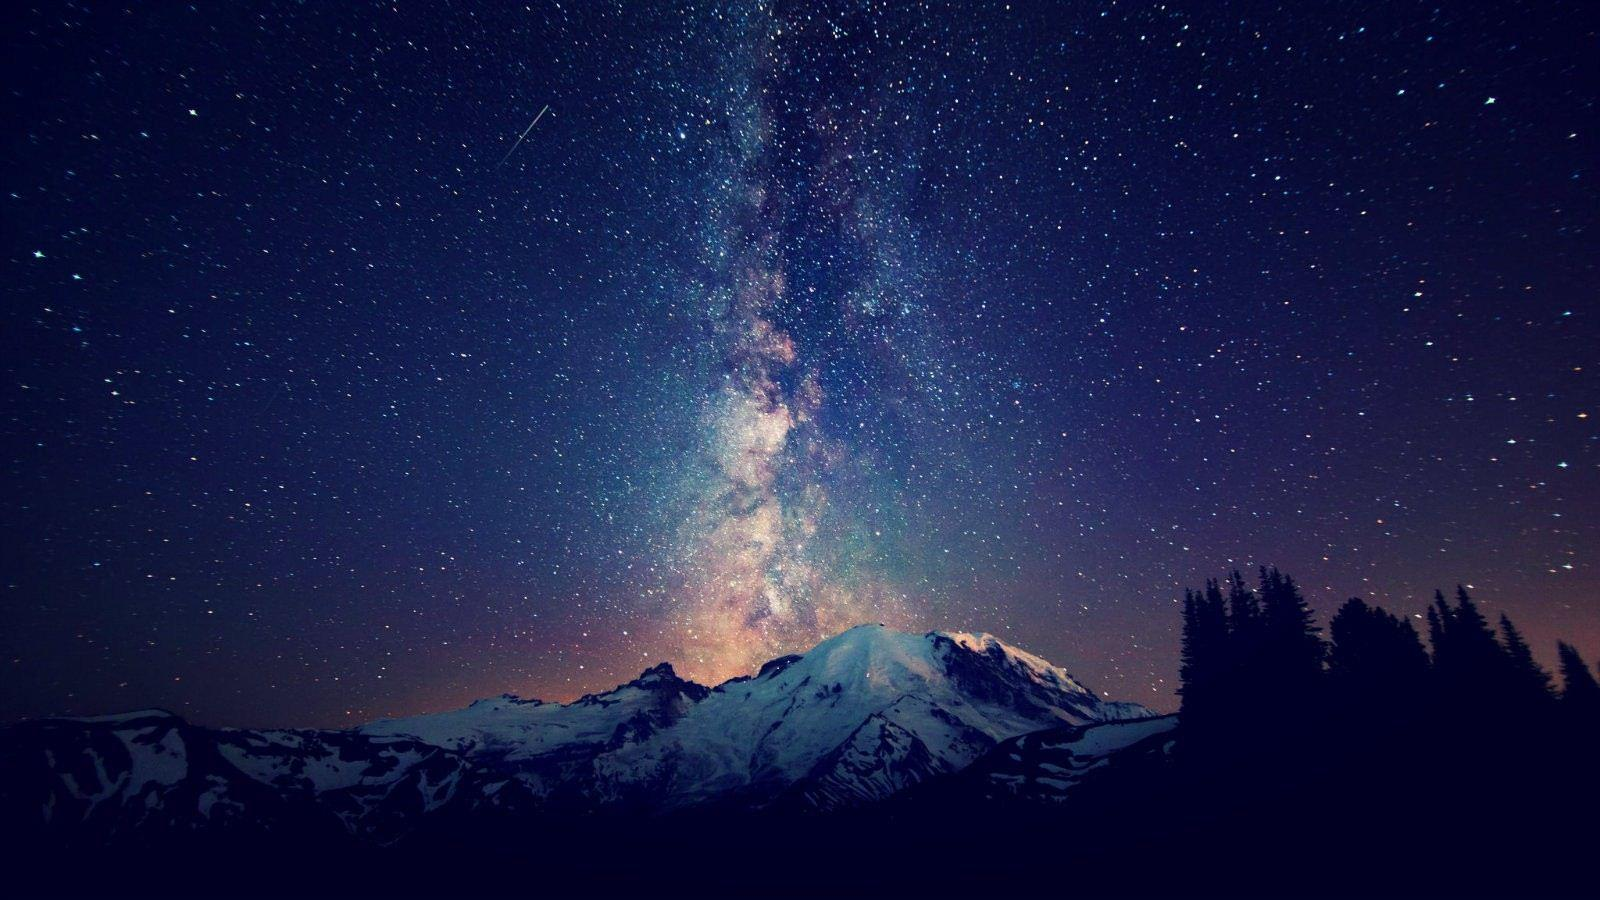 Milky Way Galaxy Over Mountains - Destkop Backgrounds